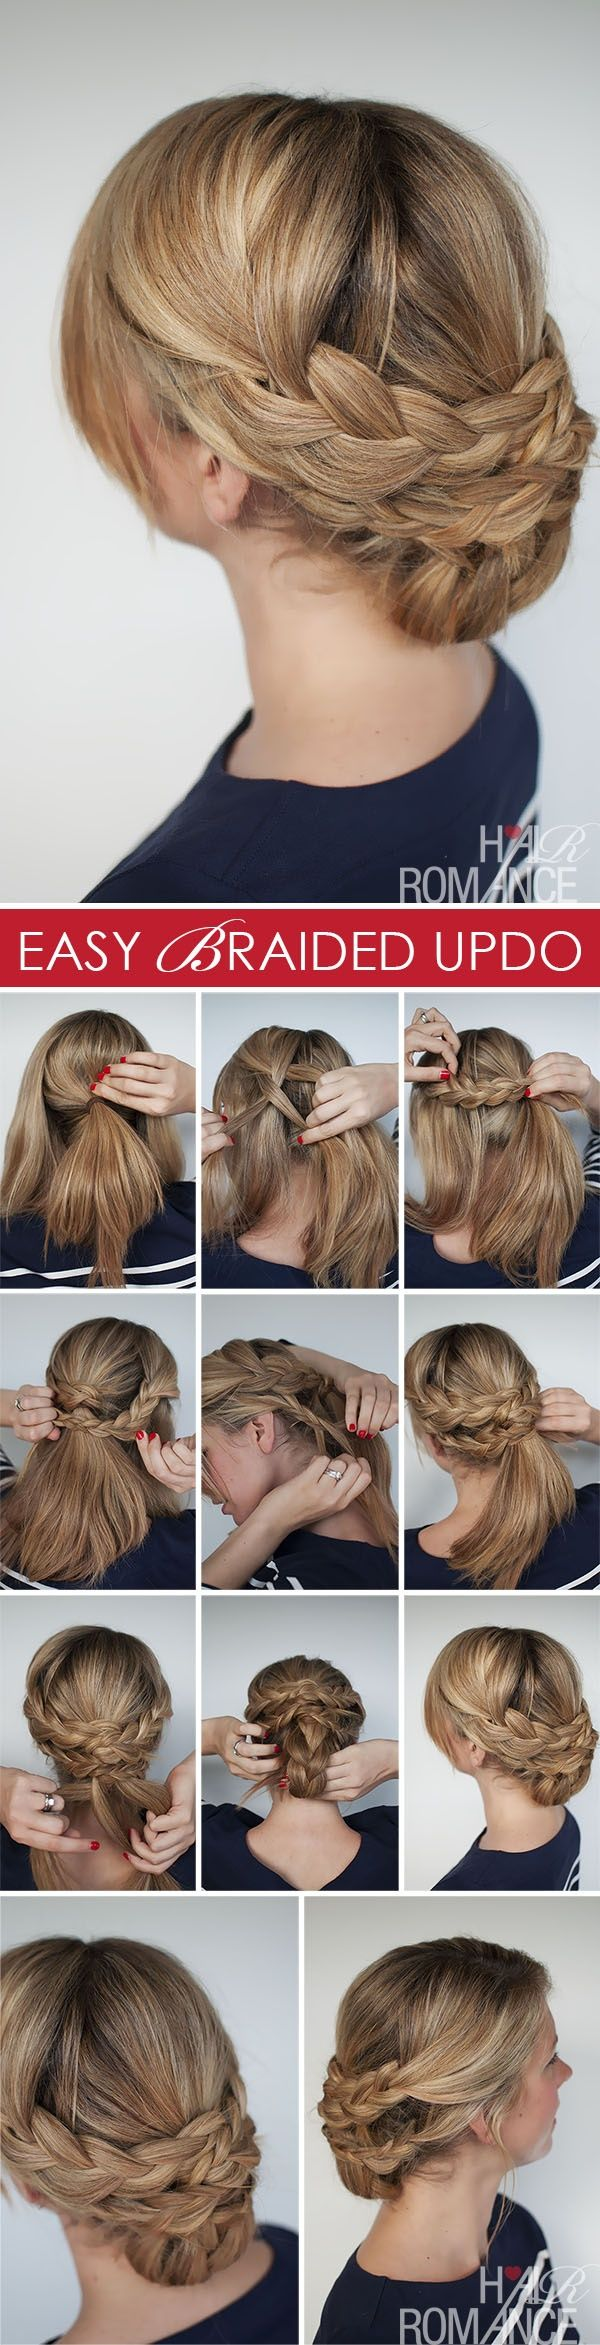 Hairstyle how to - Hair Romance easy braided upstyle tutorial